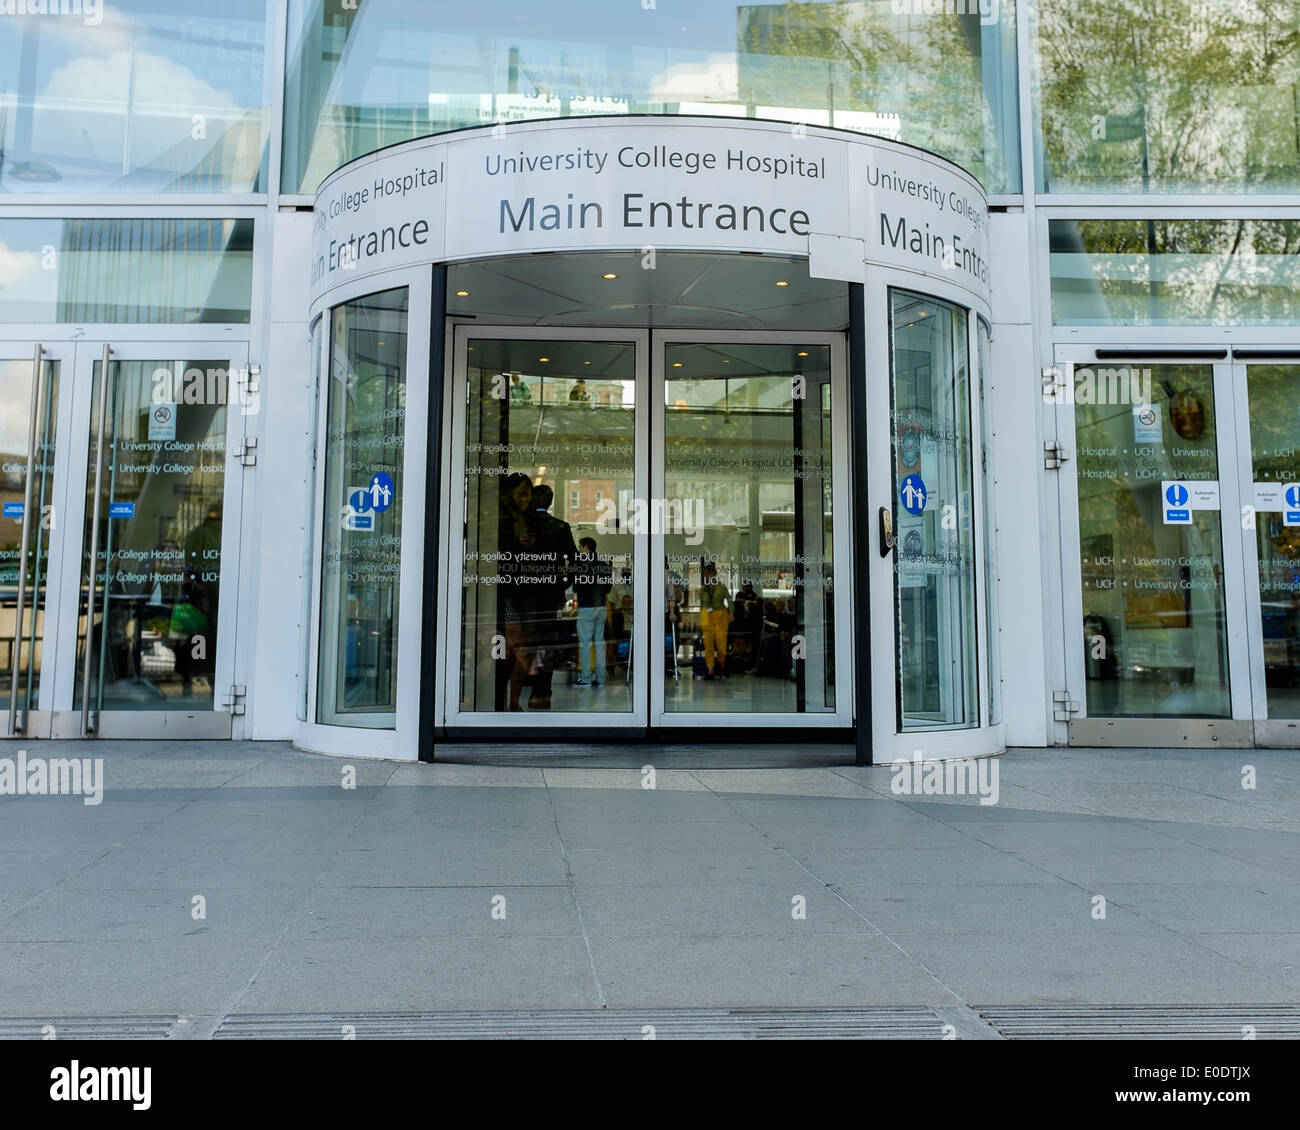 The main entrance to university college hospital on euston for Sliding door main entrance